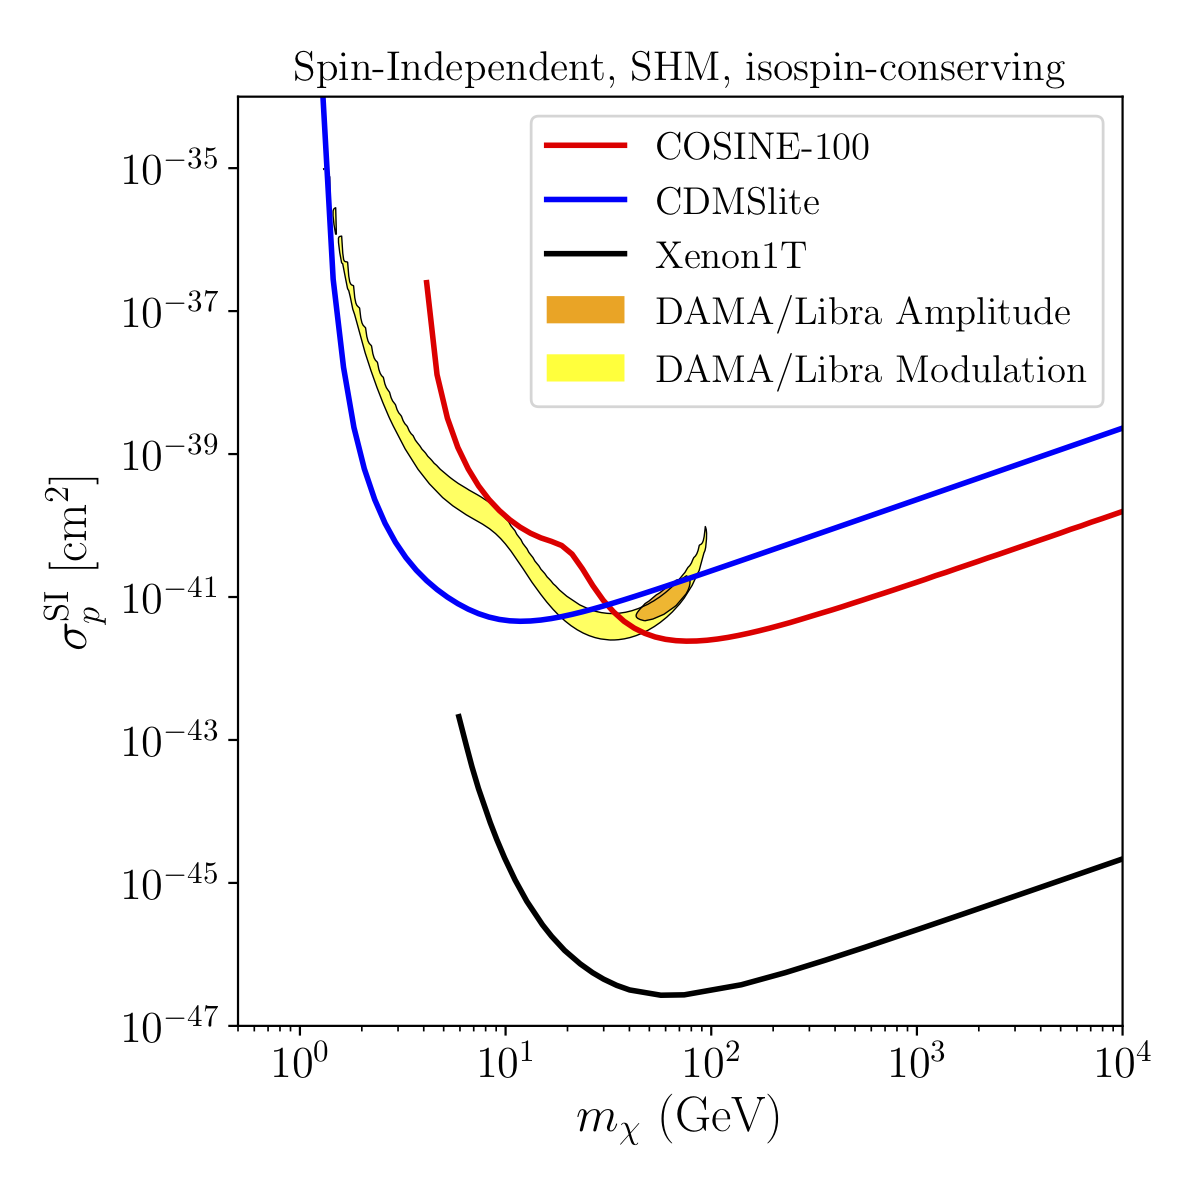 Limits on dark matter elastic spin-independent scattering from XENON1T, CDMSlite, and Cosine-100 assuming the Standard Halo Model, contrasted with the best-fit regions from DAMA/Libra. Fits to the recoil spectrum are shown in orange, and to the daily modulation in yellow.